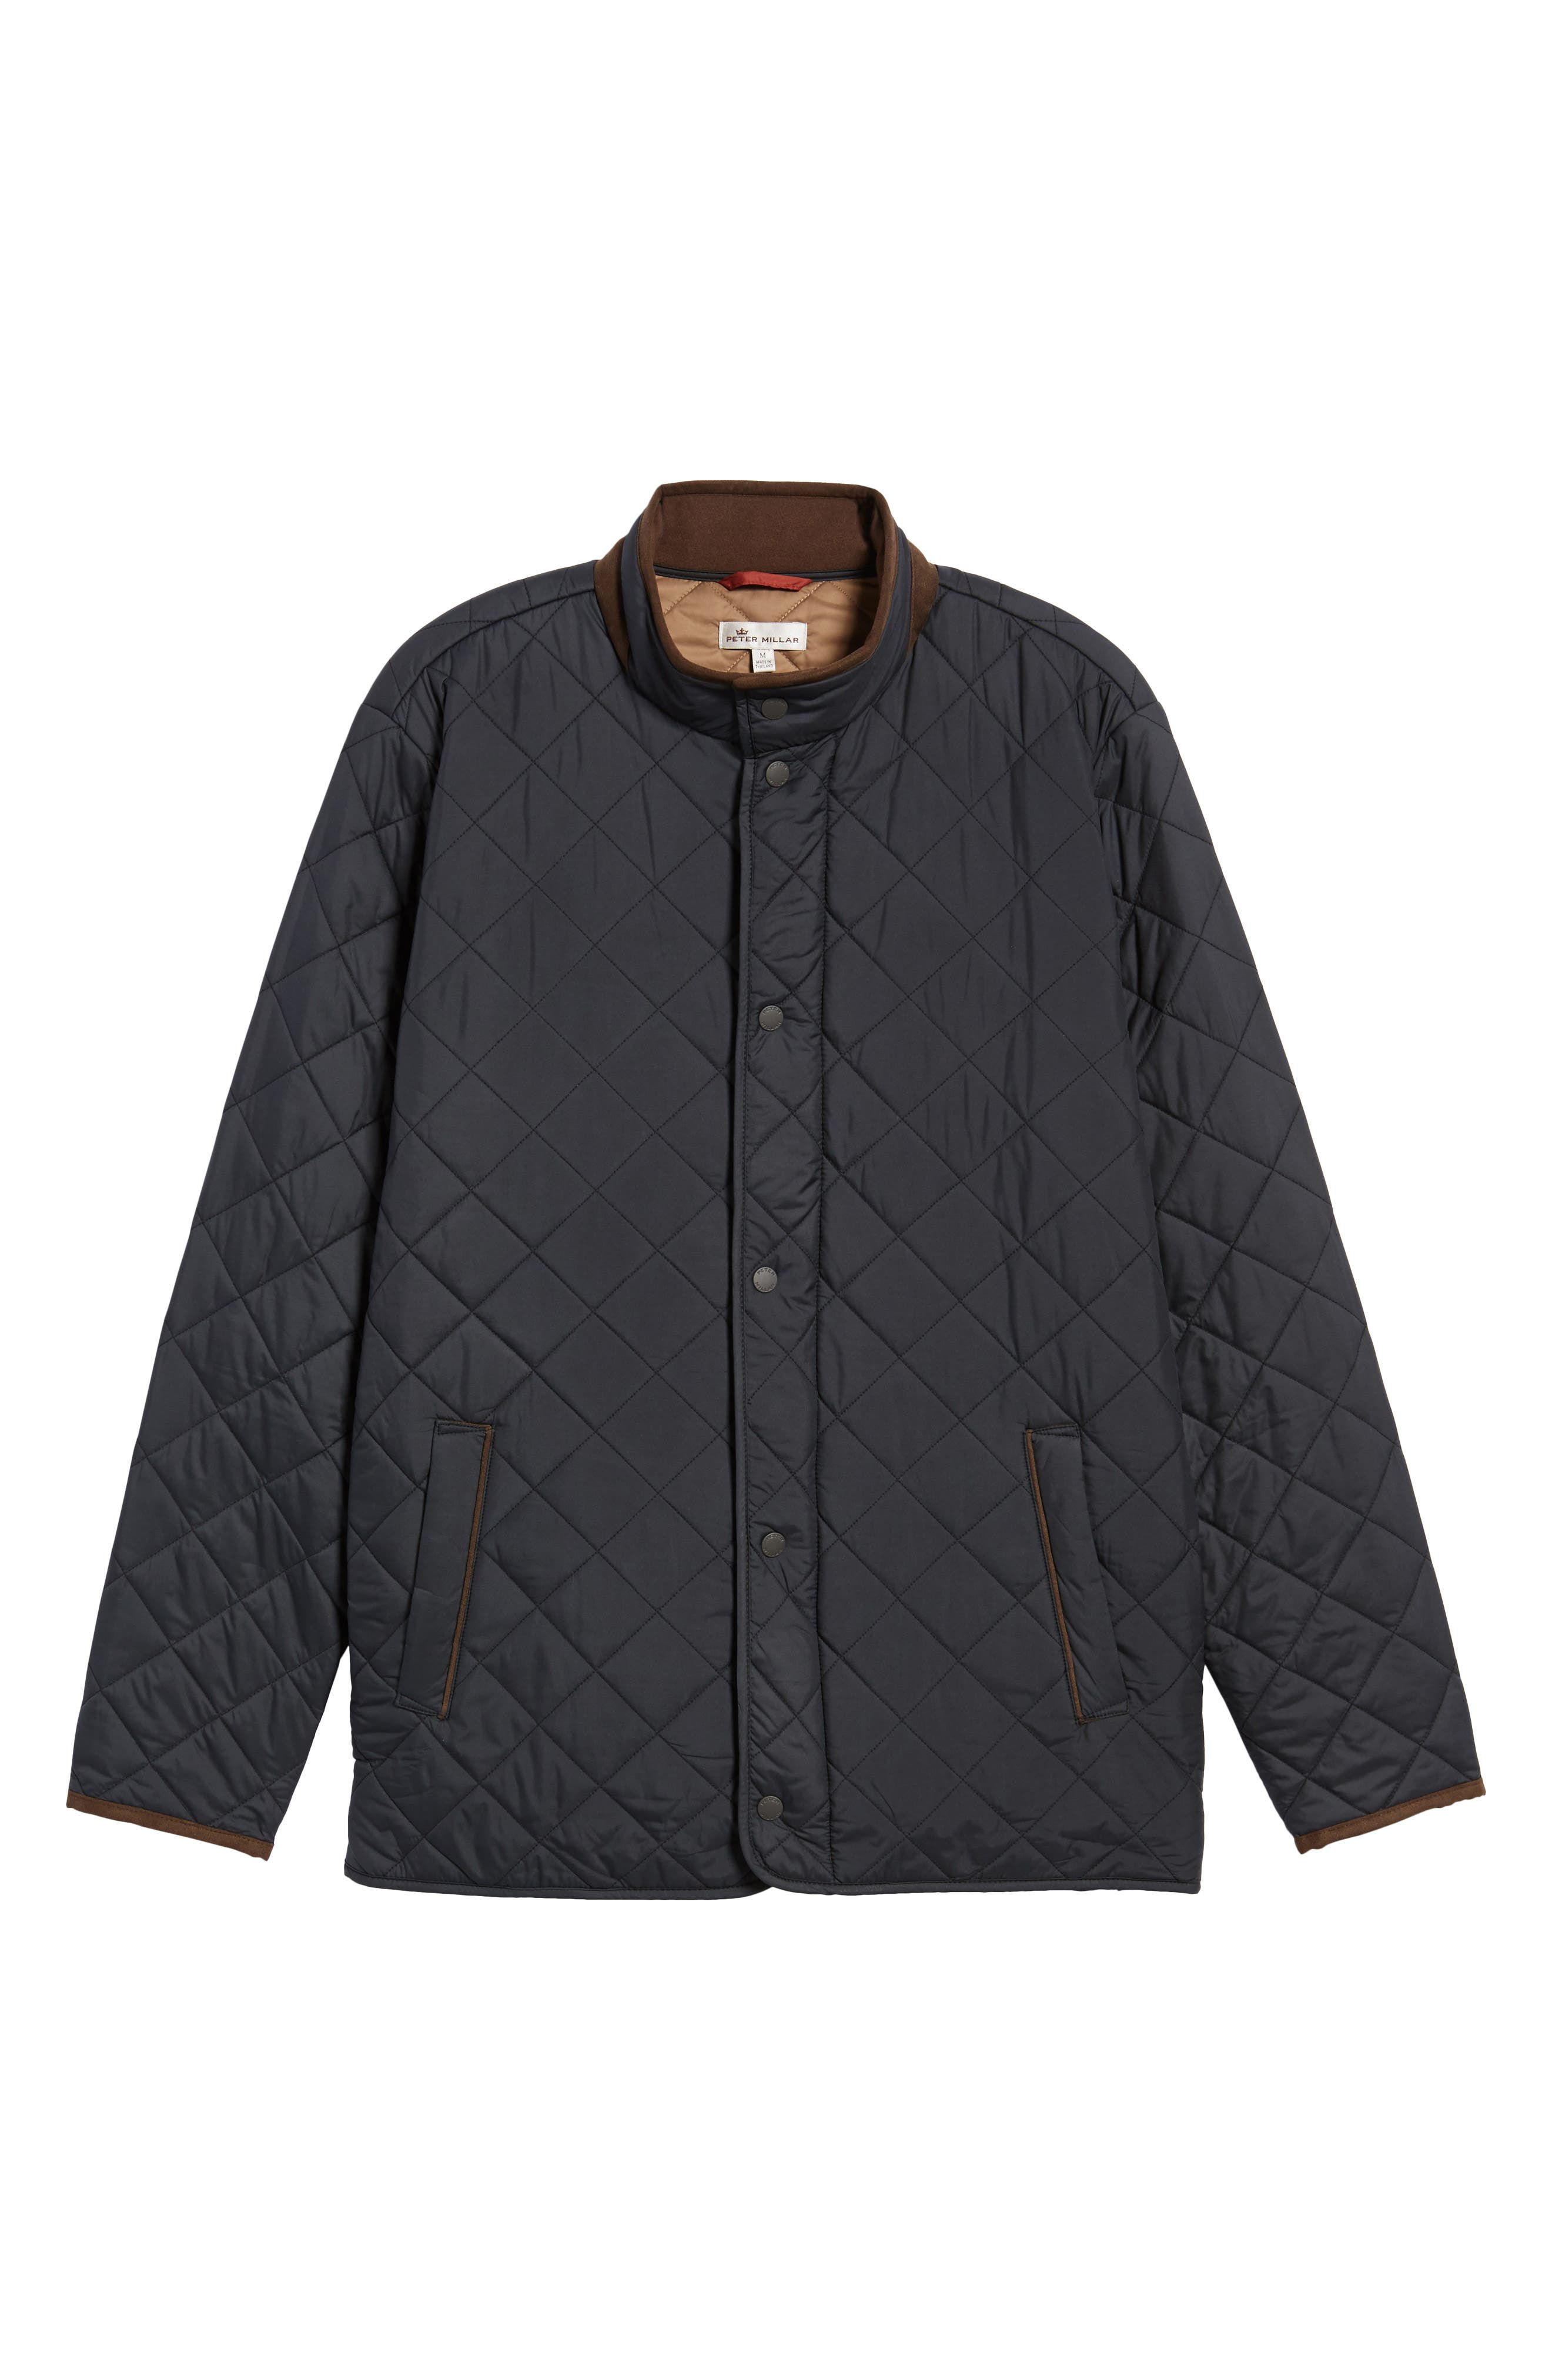 Suffolk Quilted Water-Resistant Car Coat,                             Alternate thumbnail 6, color,                             001